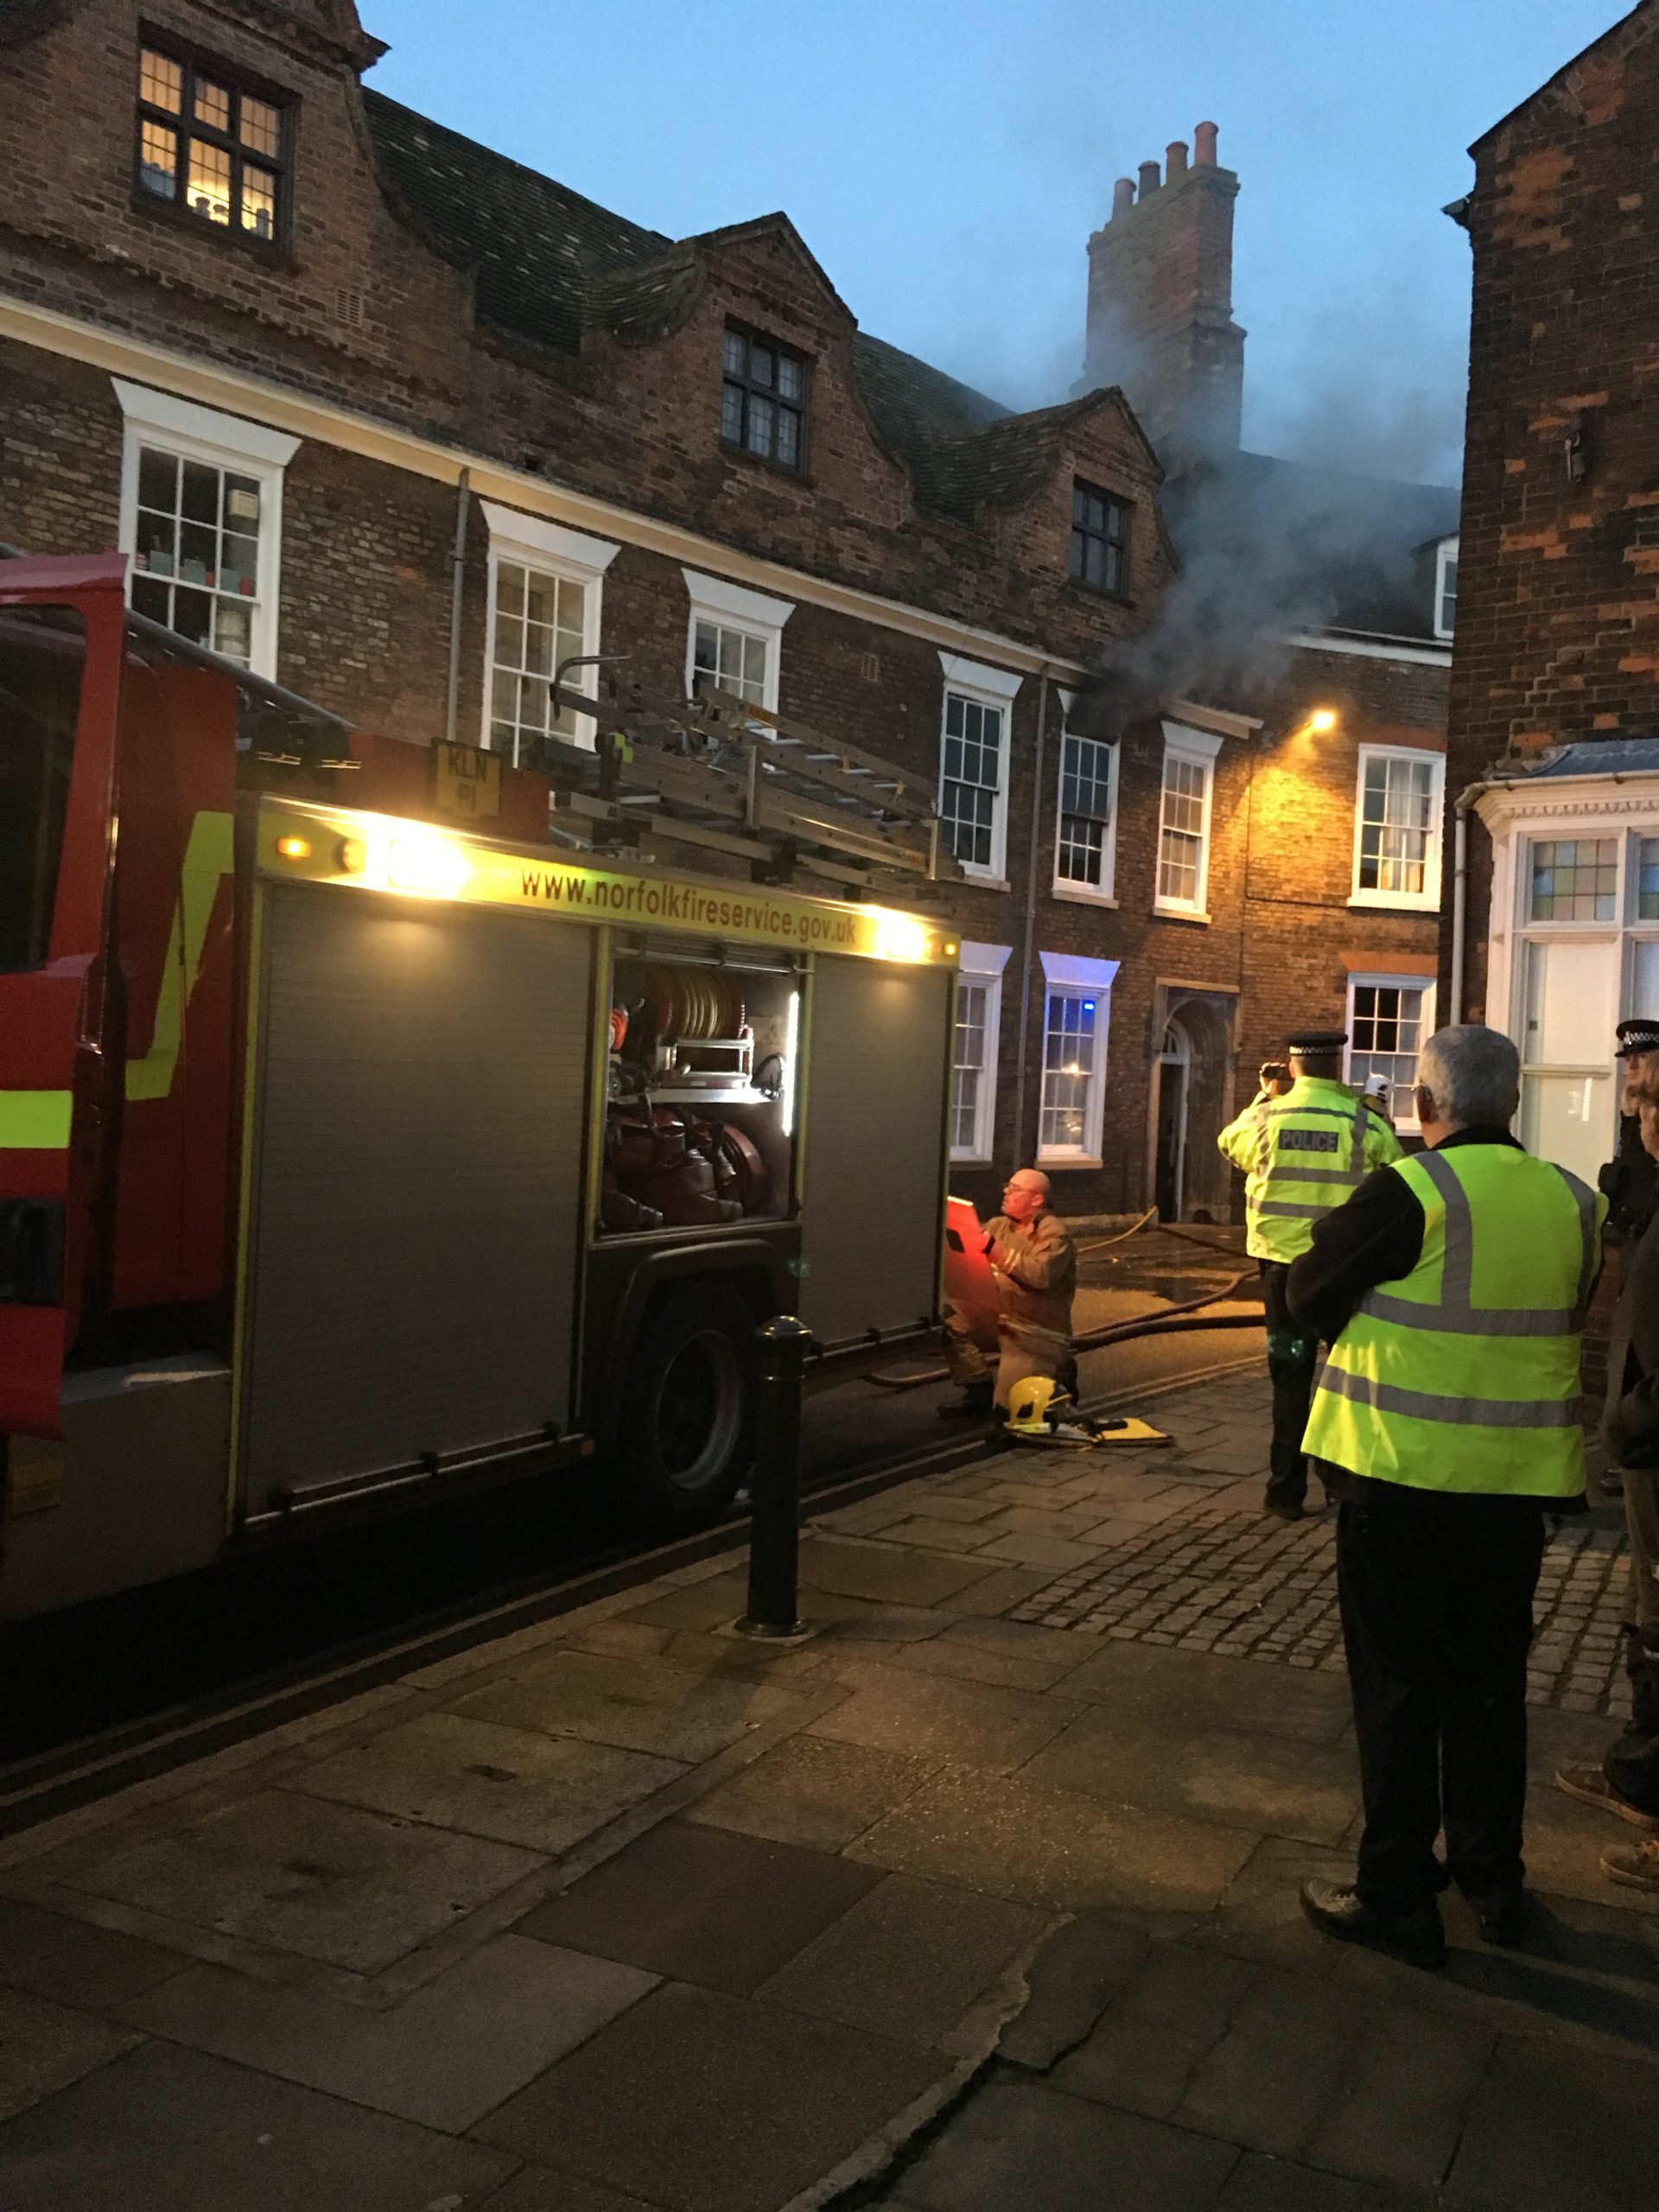 Fire at Thoresby College